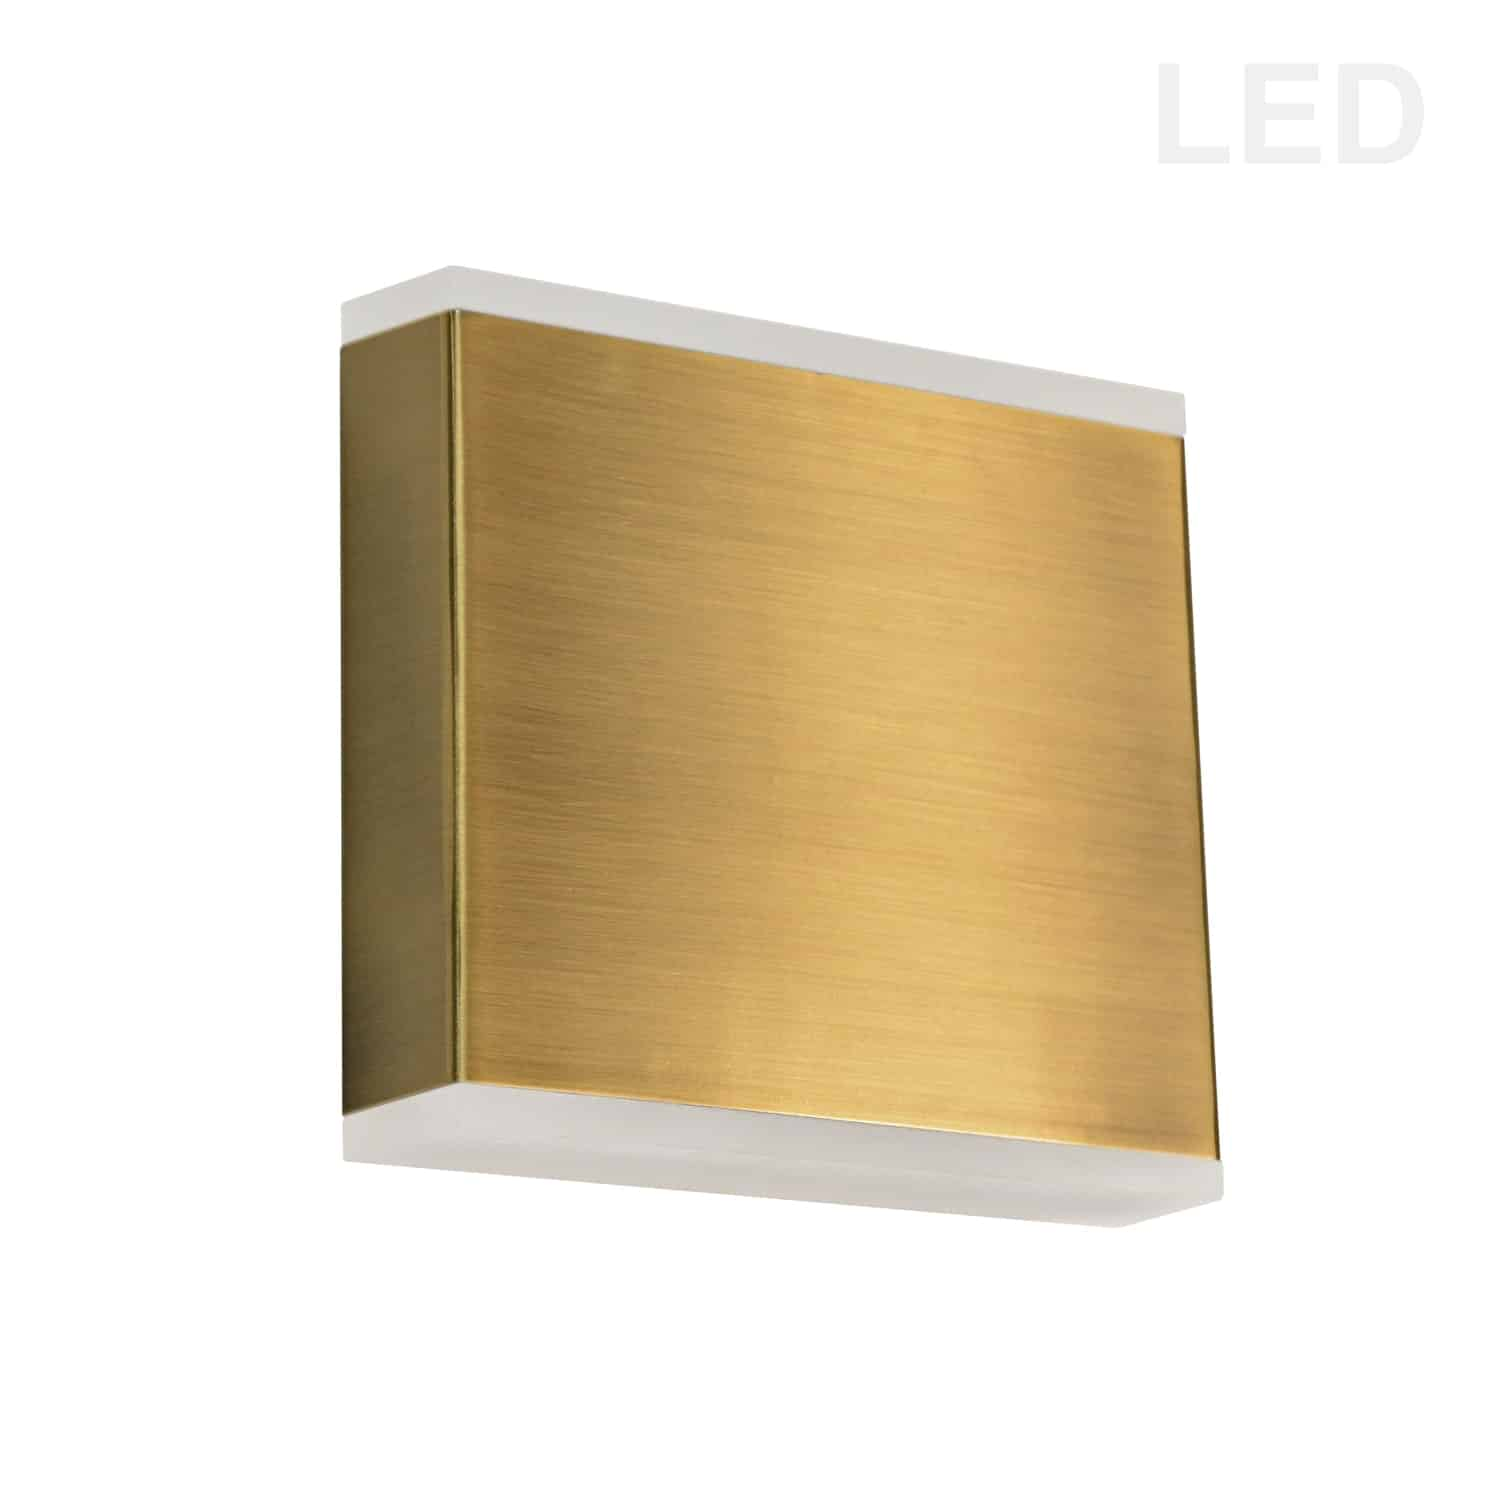 15W LED Wall Sconce, Aged Brass with Frosted Acrylic Diffuser